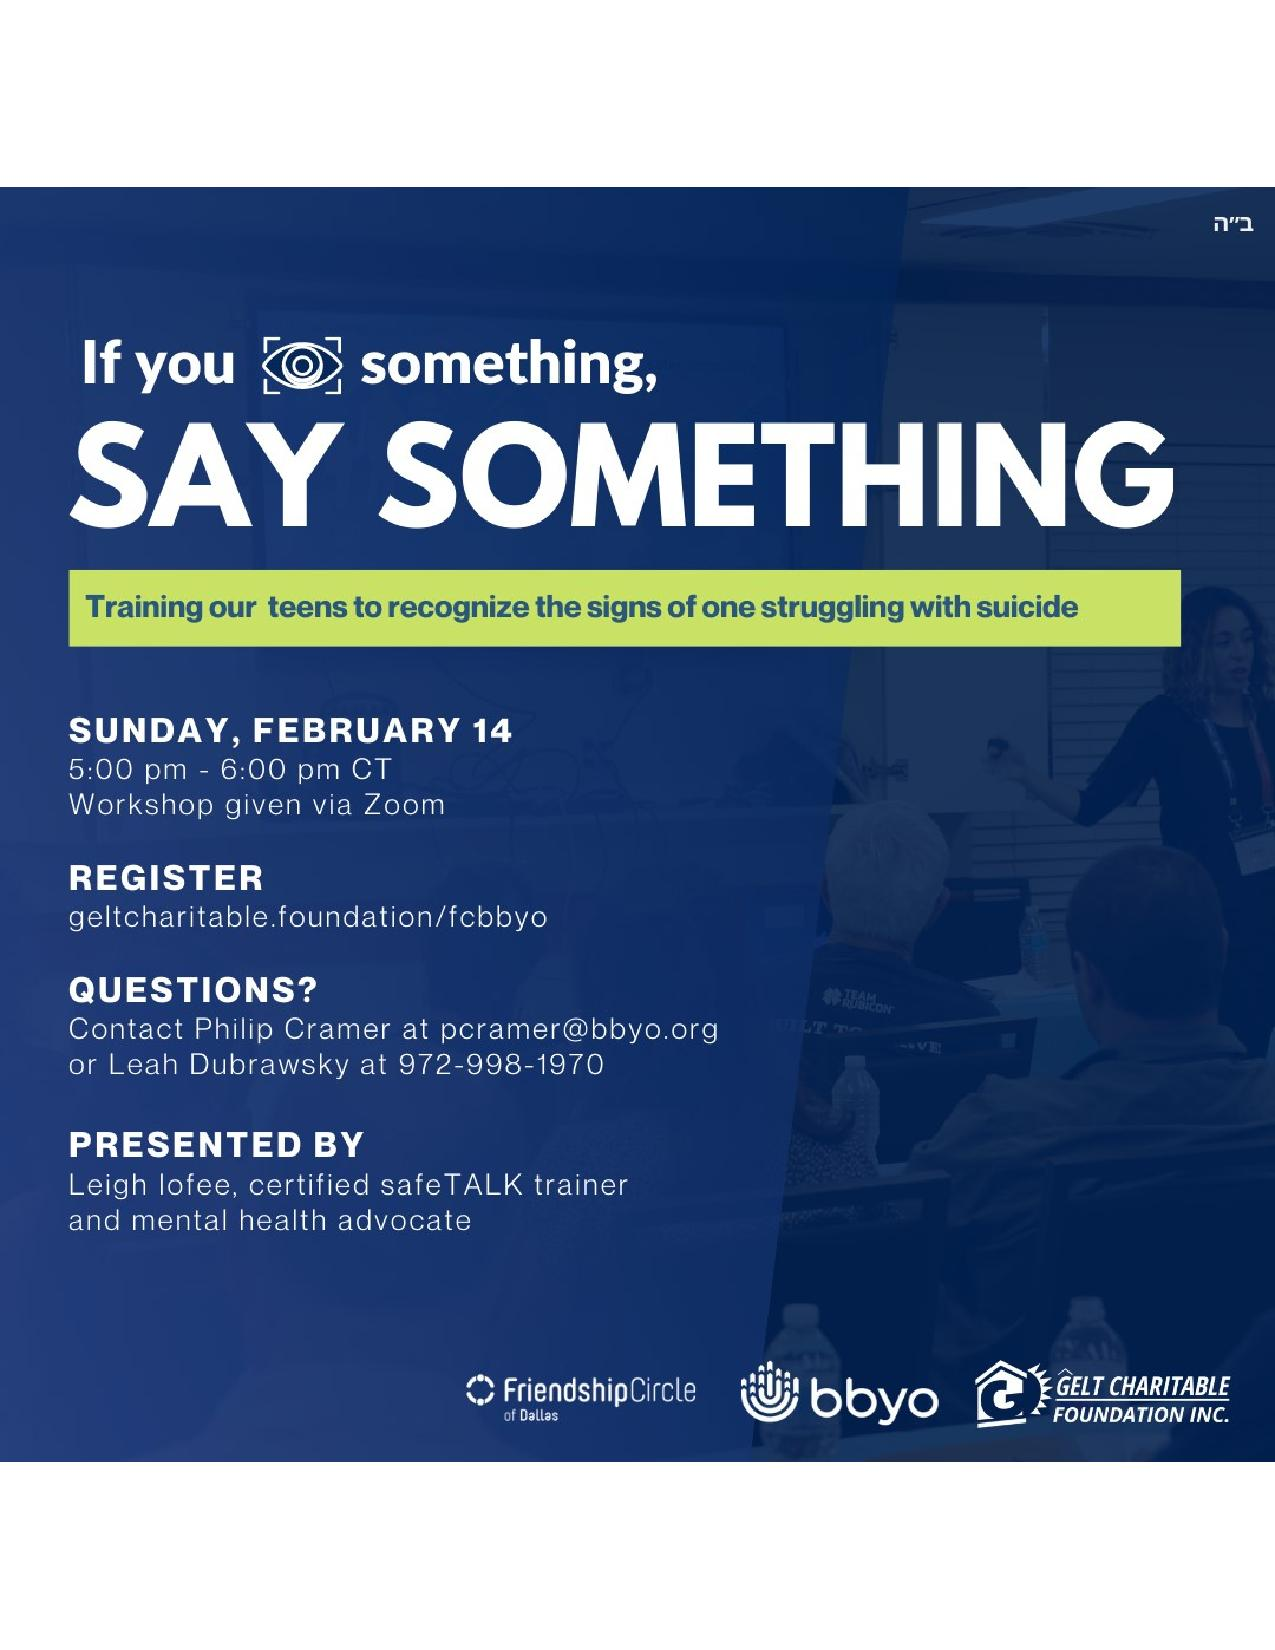 NTO IC Stand UP: If You See Something, Say Something image